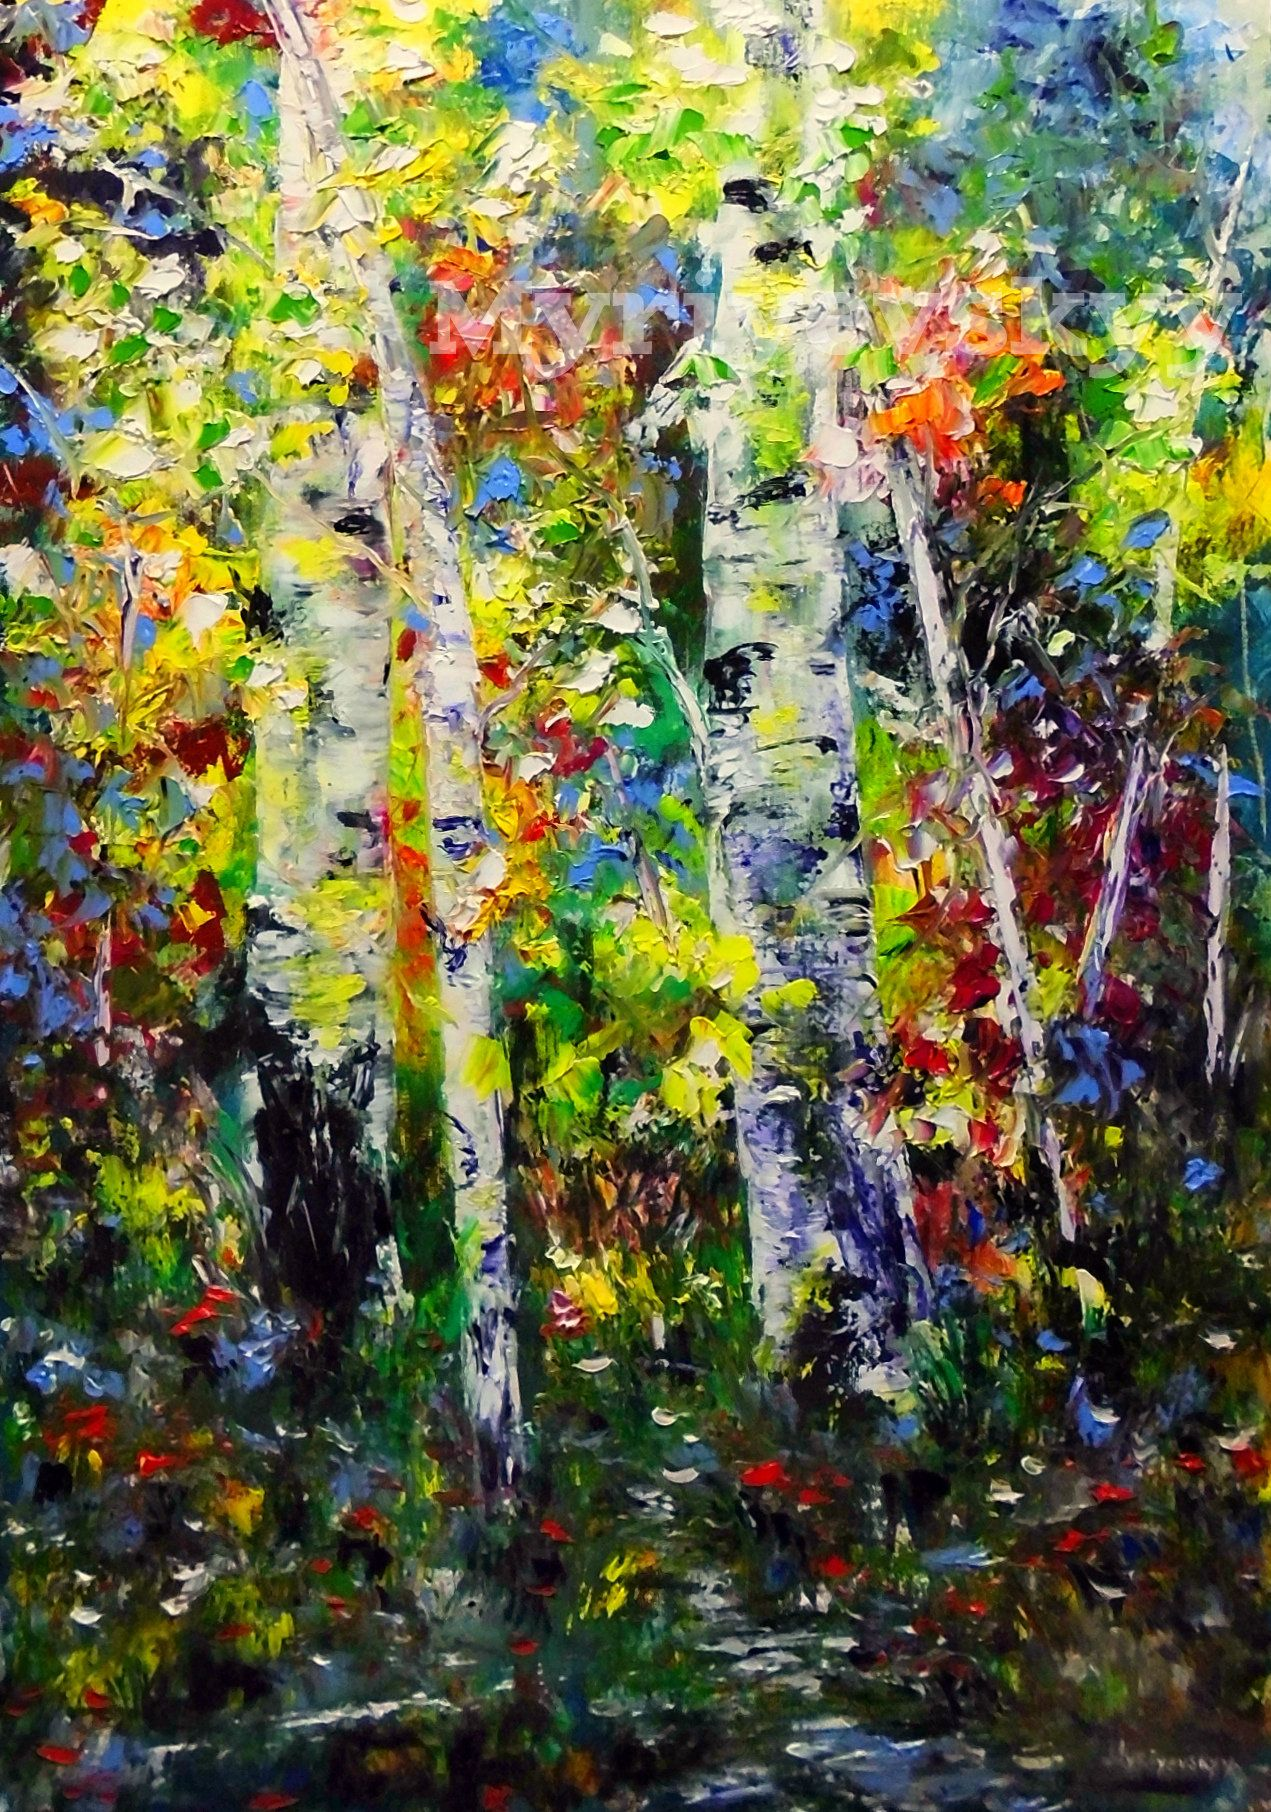 Original Birch Forest Textured Tree Palette Knife Landscape Painting Oil On Canvas Modern Art By Volodymyr My Oil Painting Landscape Flower Wall Art Painting